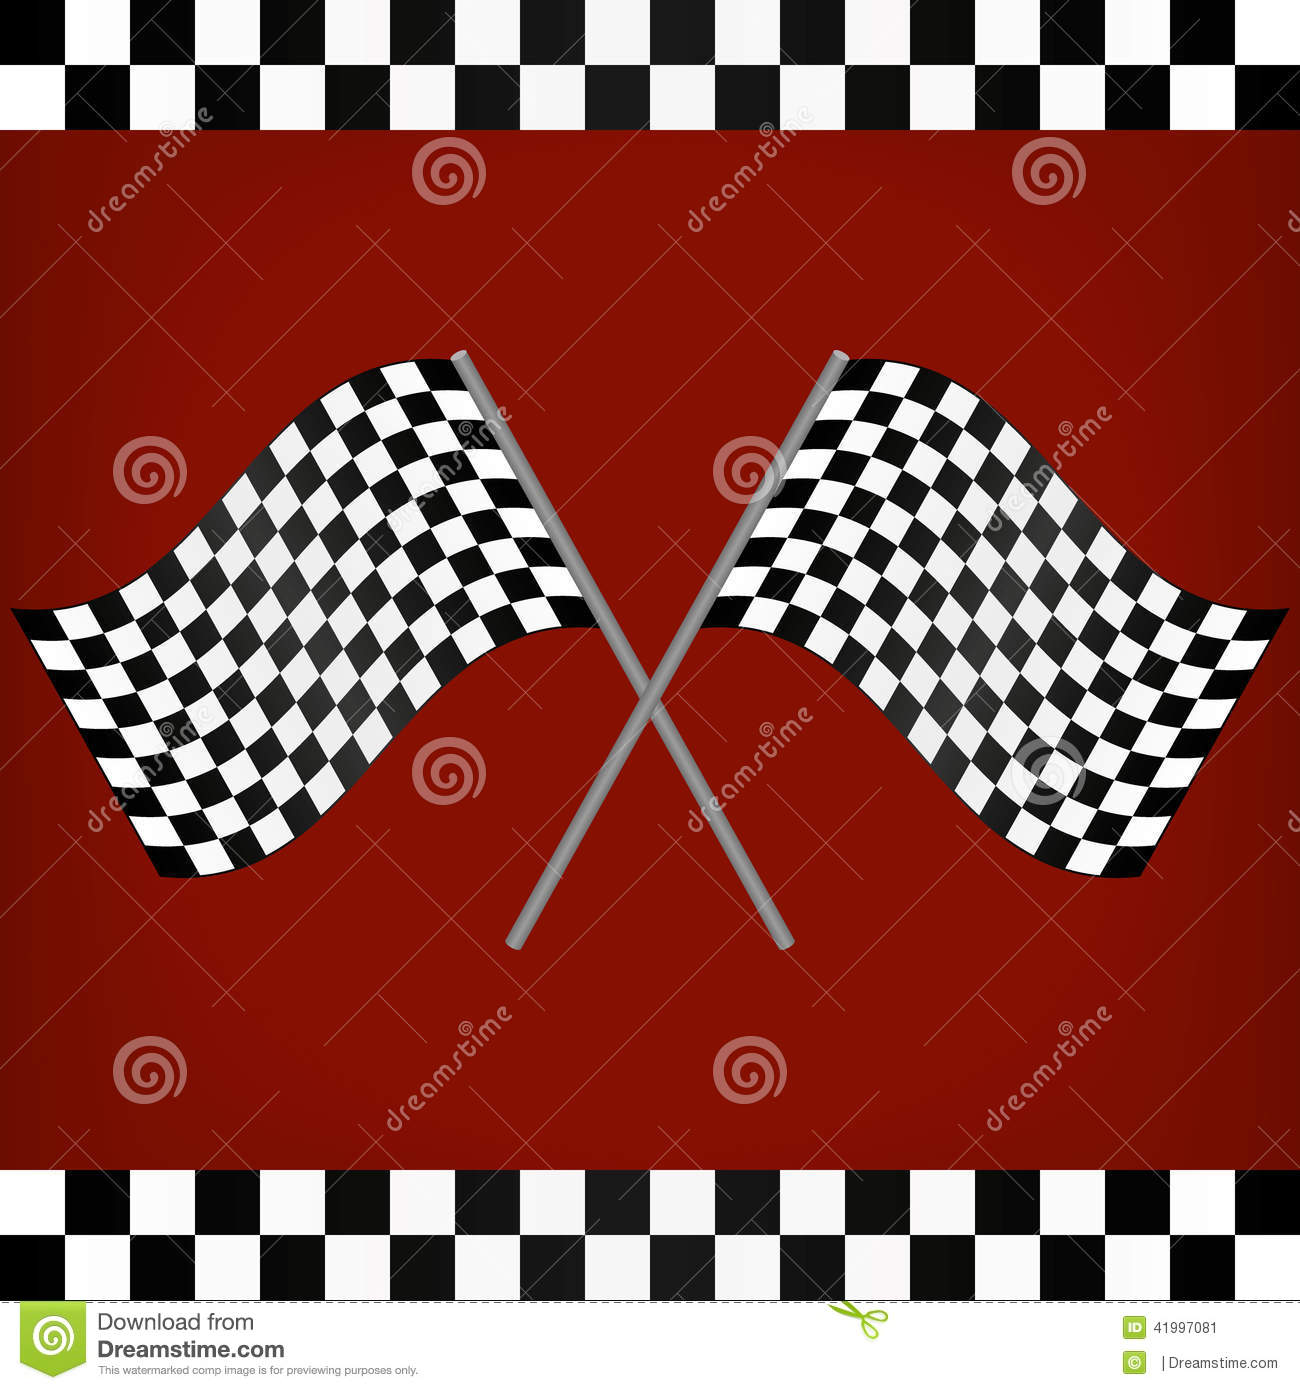 Crossed Racing Checkered Flags Stock Vector - Image: 41997081